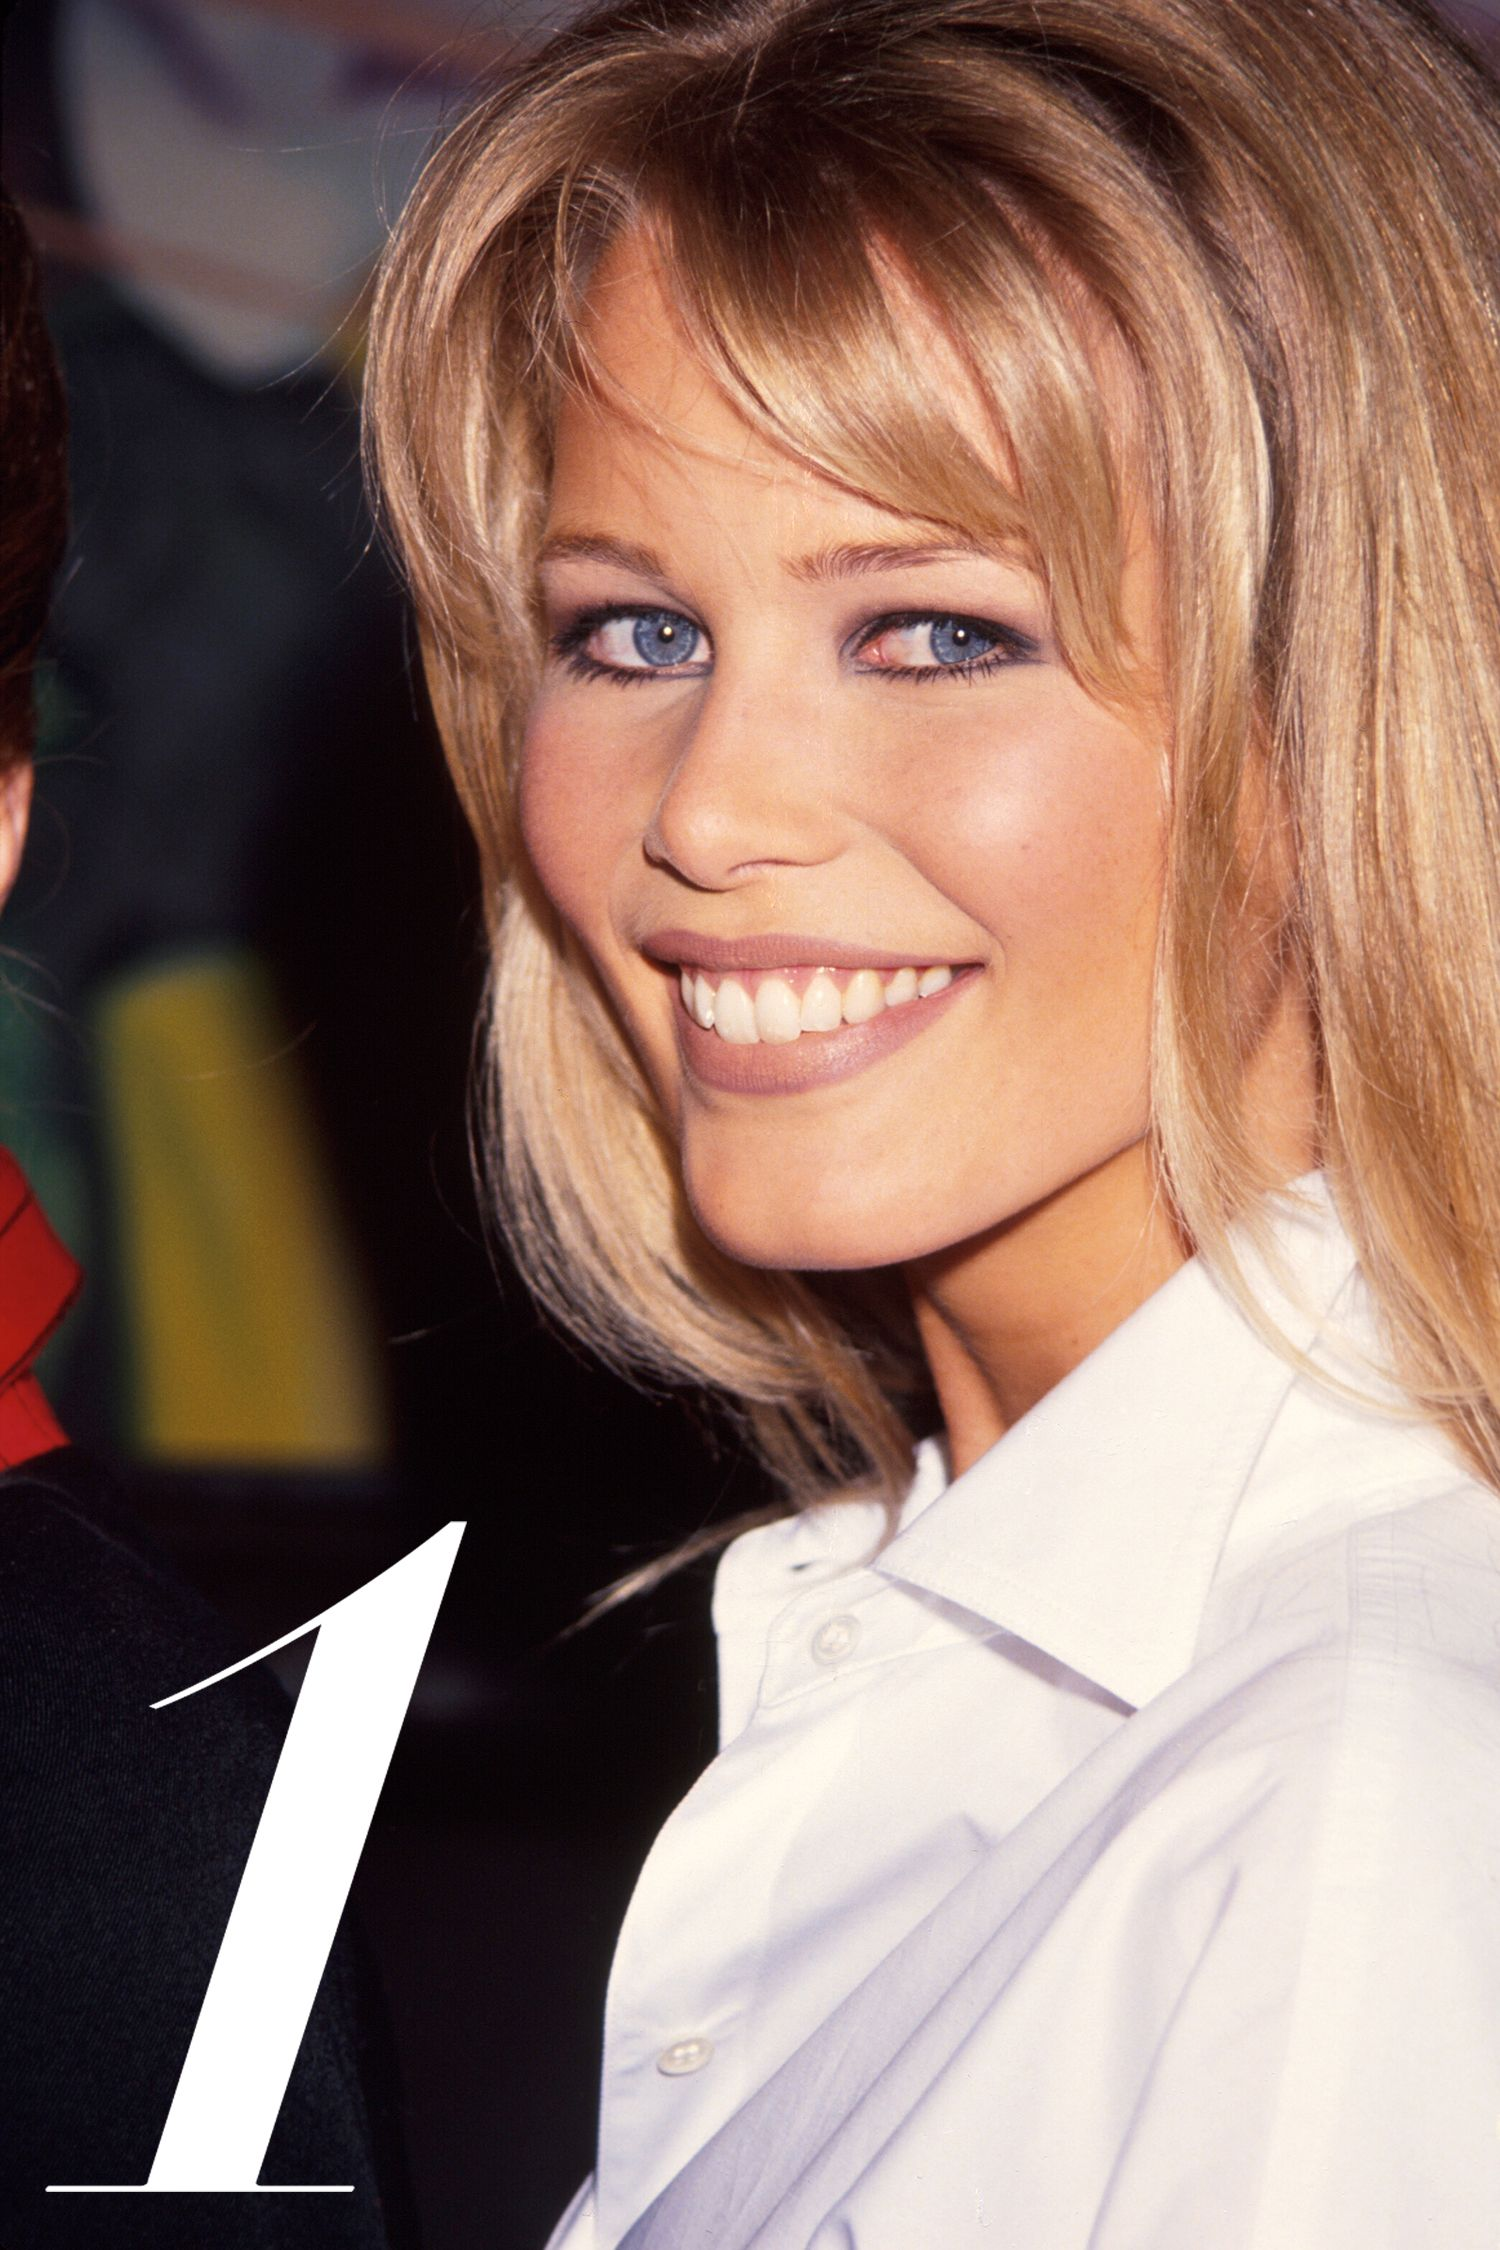 Model Claudia Schiffer.  (Photo by Time Life Pictures/DMI/The LIFE Picture Collection/Getty Images)